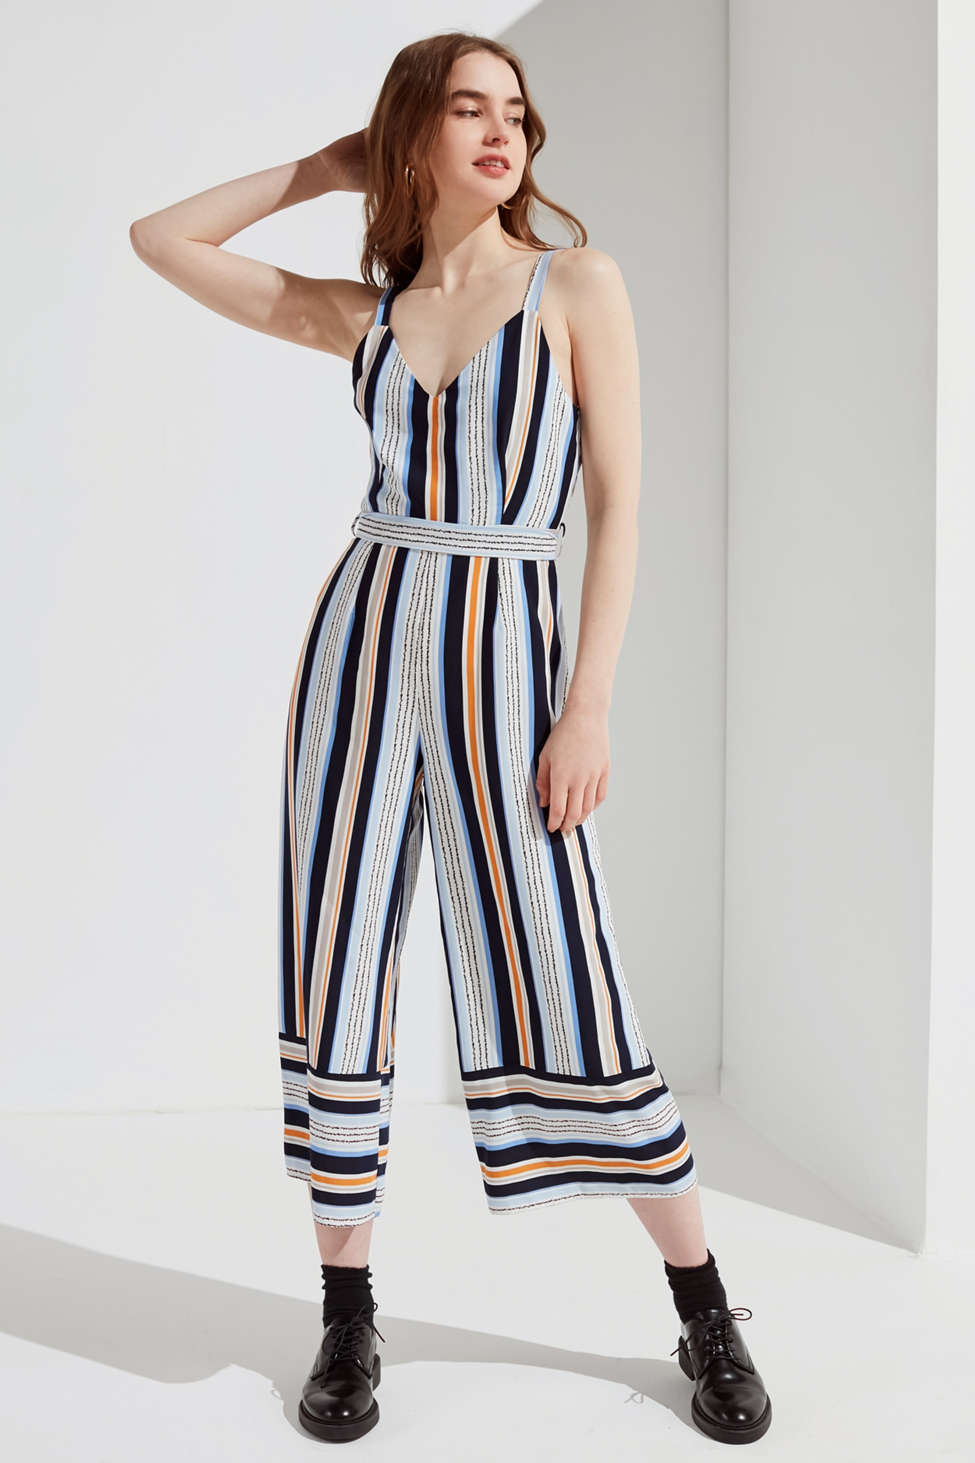 Lost Wander Claudia Striped Jumpsuit Urban Outfitters